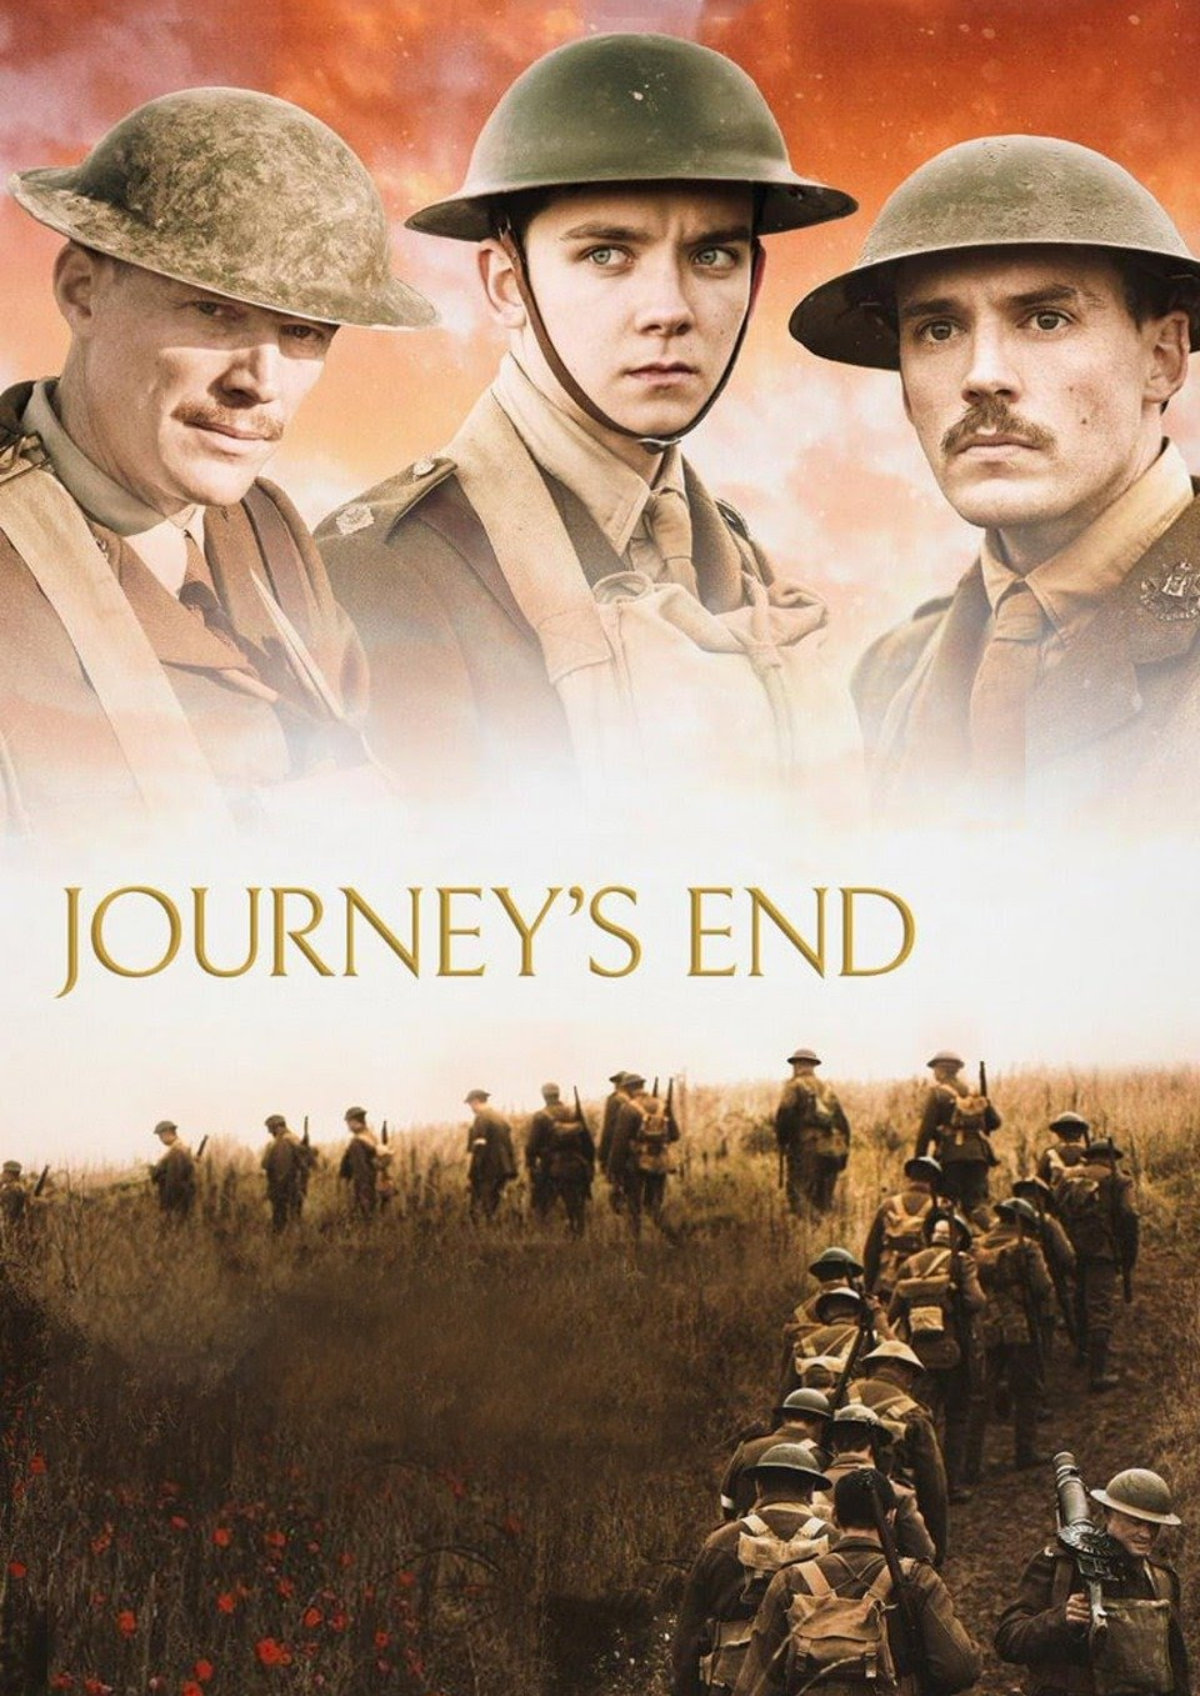 'Journey's End' movie poster